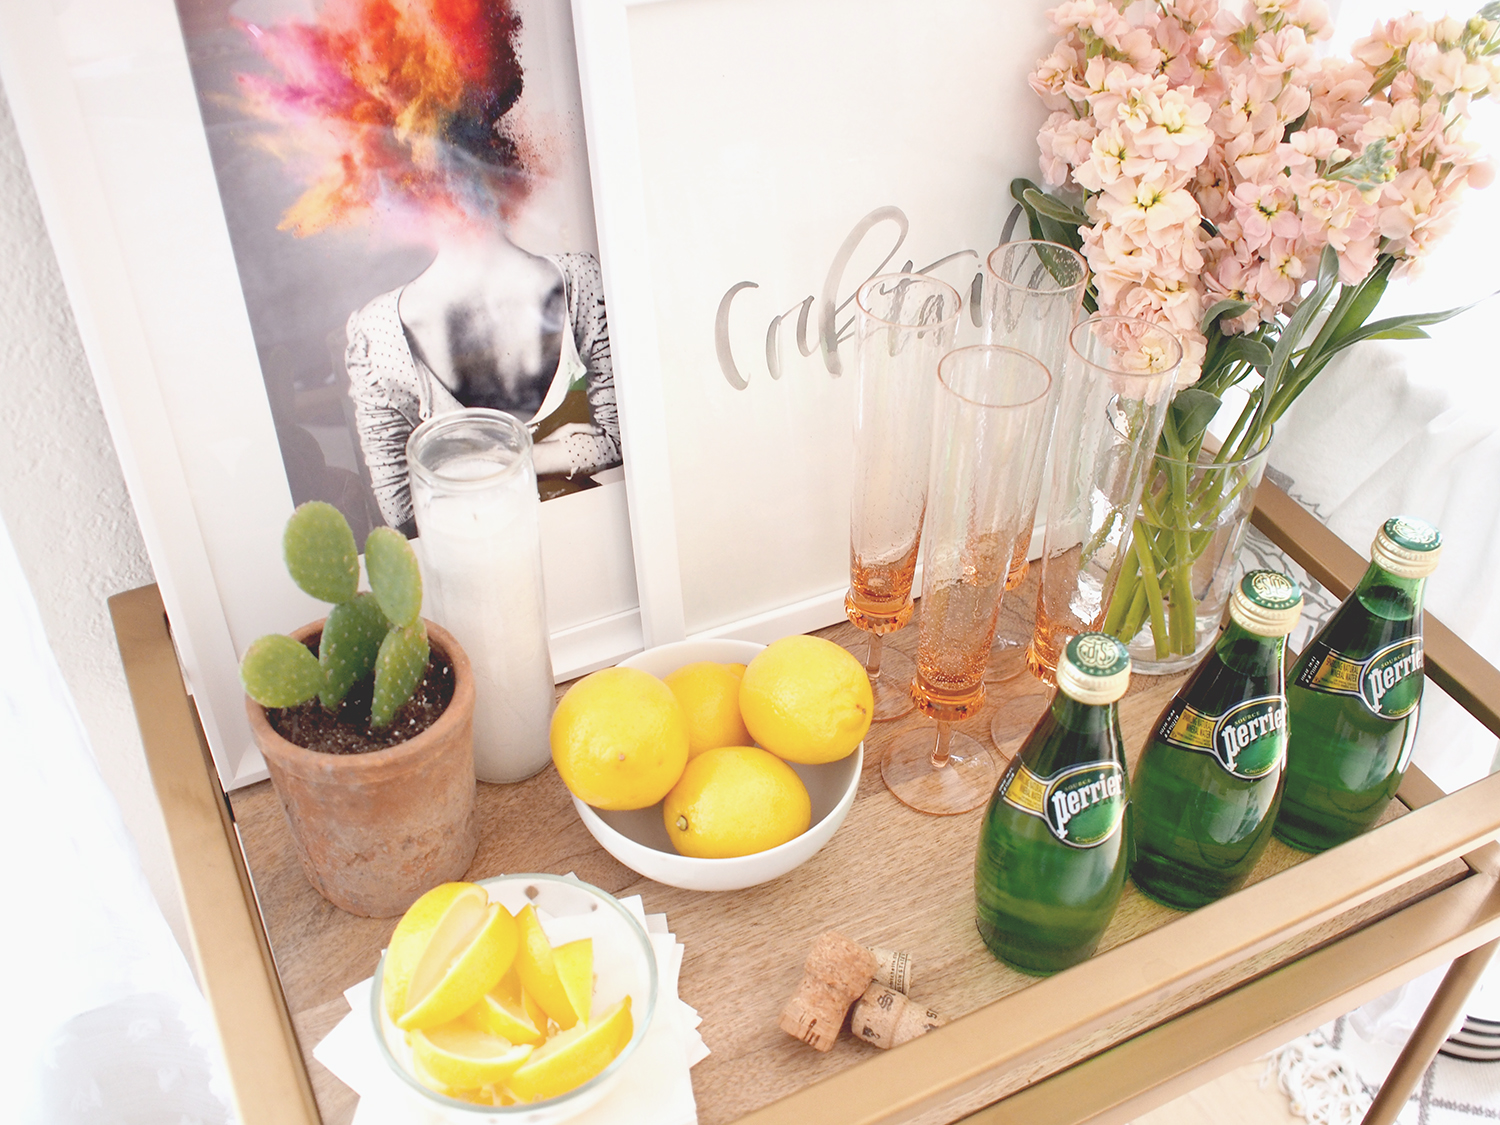 Bar cart decor that goes from spring to summer | A Fabulous Fete